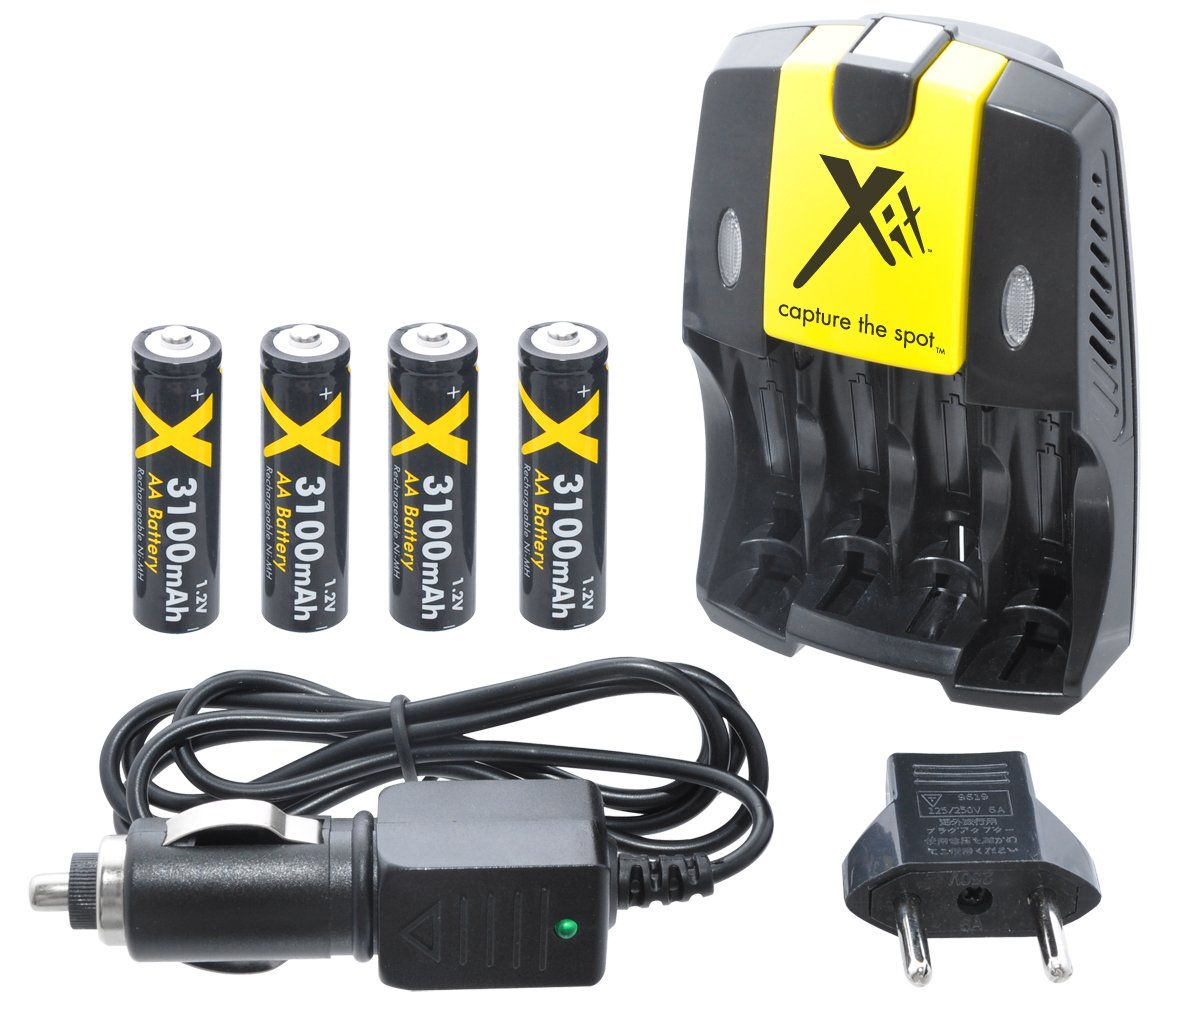 Xit XTCH2950 4 AA Rechargeable Batteries with Charger 2950mAh, Black